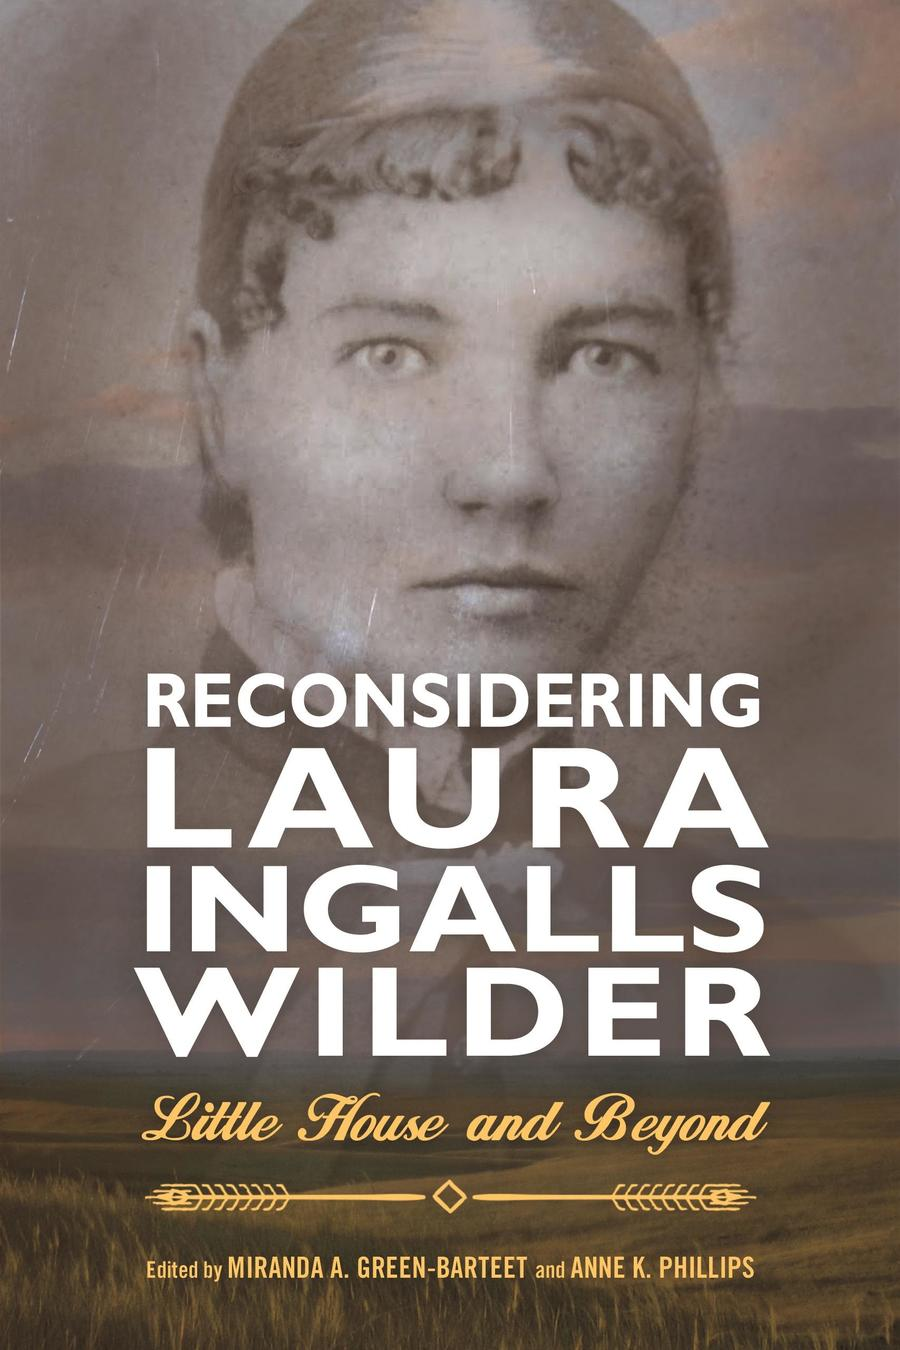 Cover of Green-Barteet & Phillips's Reconsidering Laura Ingalls Wilder